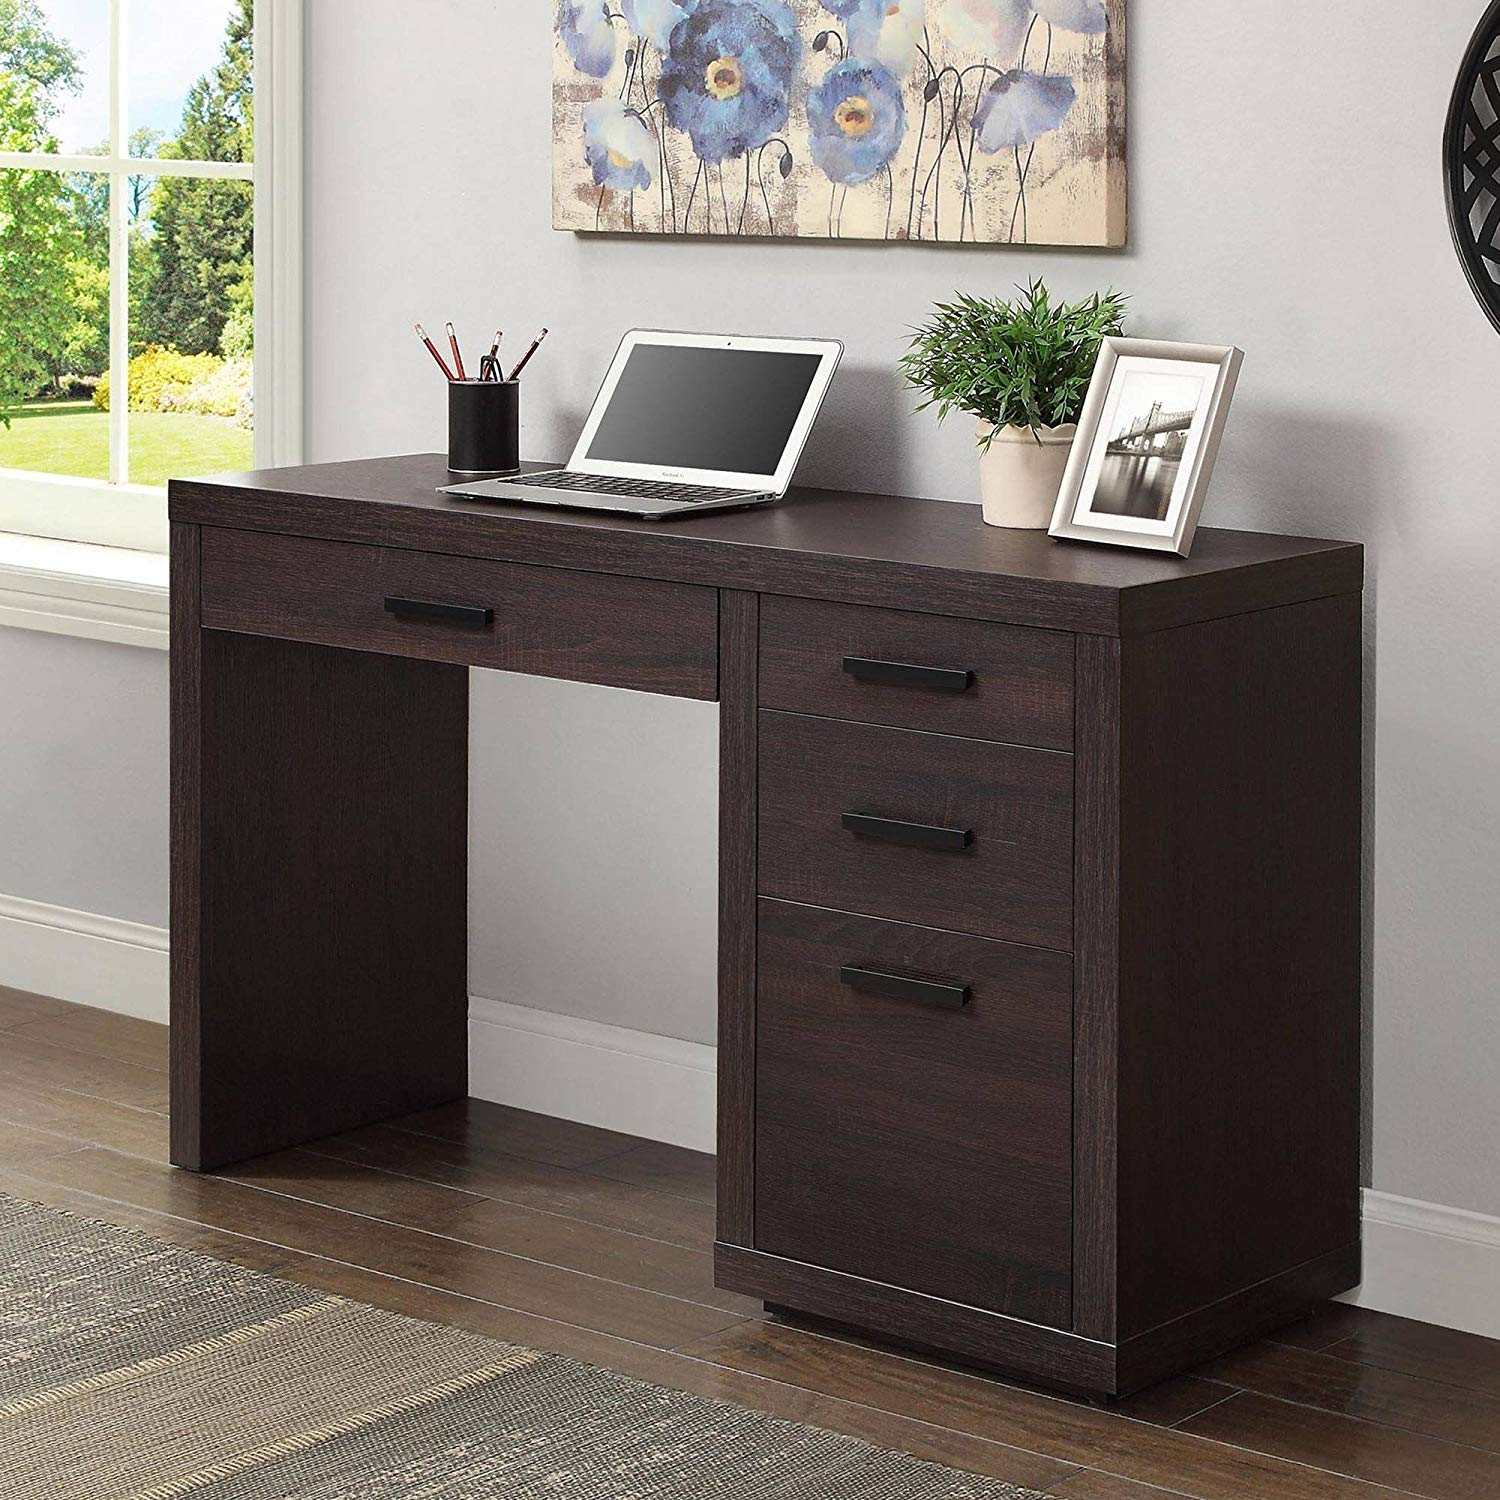 Writing Desk, Deep Espresso Finish, Great Addition to Your Hhome Office, Features Large Work Surface, that is Perfect for Computing, Paying Bills or Doing Homework + Expert Guide